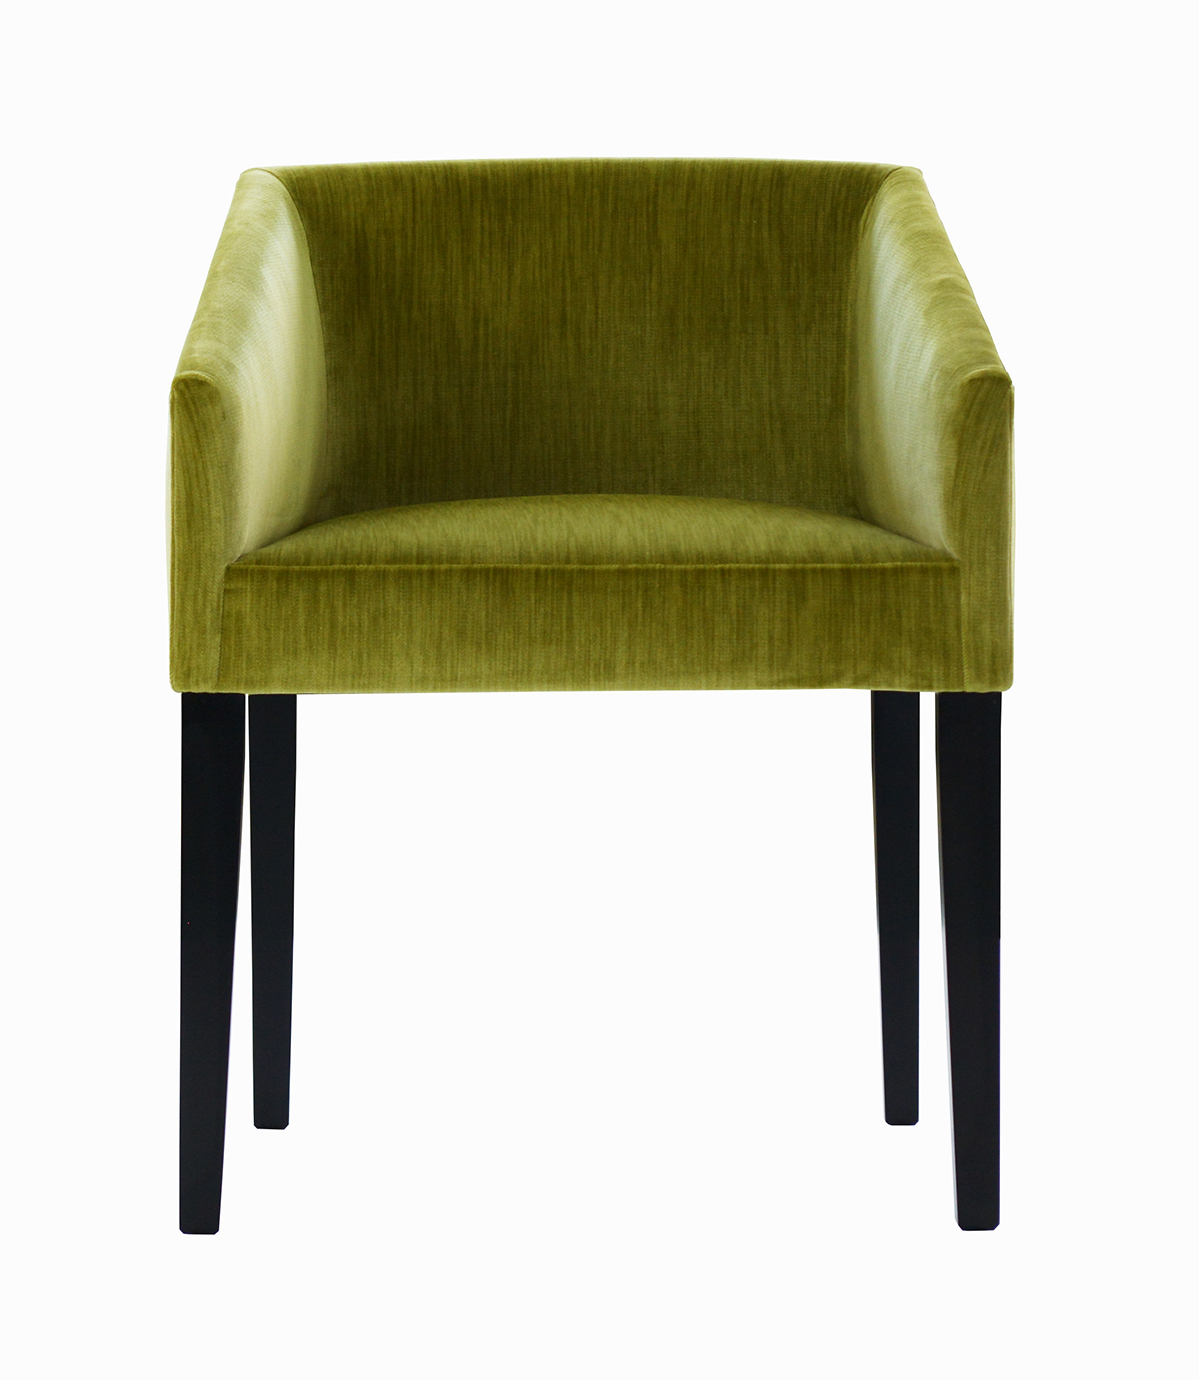 Nathan Anthony Martini chair